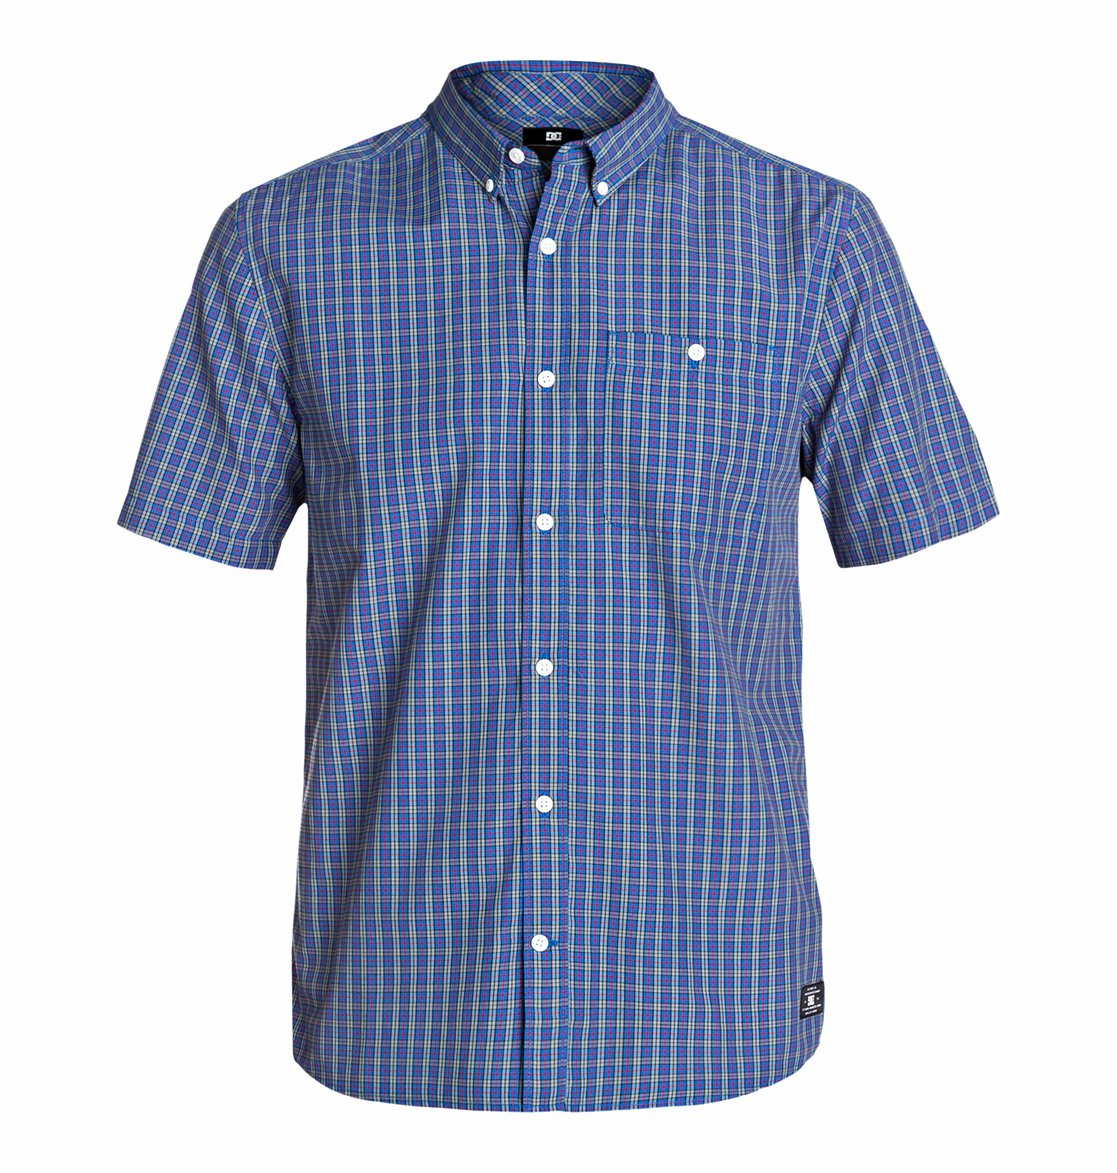 Atura Short Sleeve - Dcshoes������� ������� ��� Atura SS �� DC Shoes � ������� �� ��������� ����� 2015. ��������������: ����������� ����, ������������� �� ������ � ���������� � ������, ��������� ������.<br>